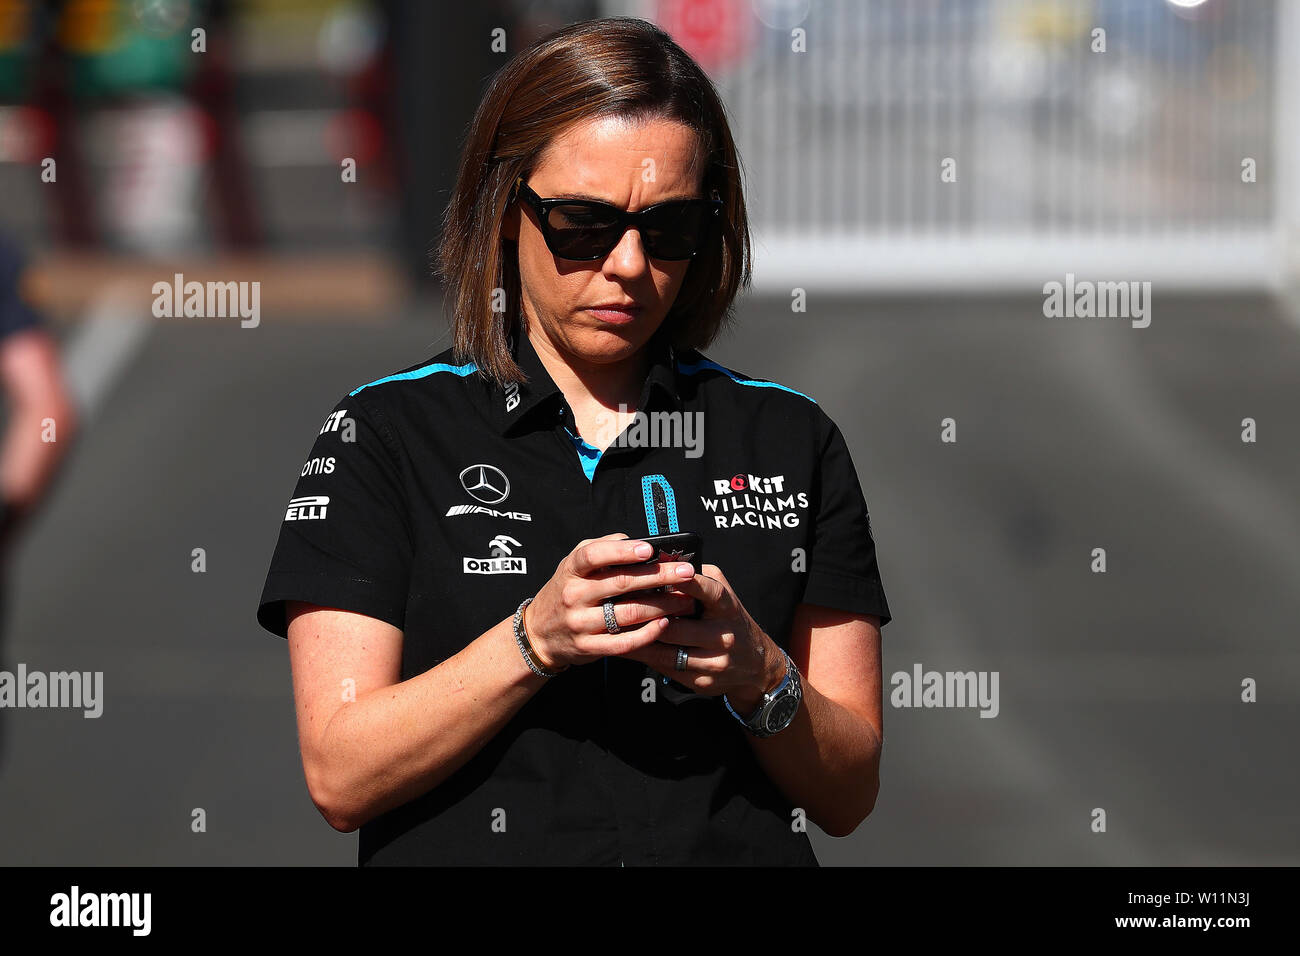 Claire Williams High Resolution Stock Photography And Images Alamy